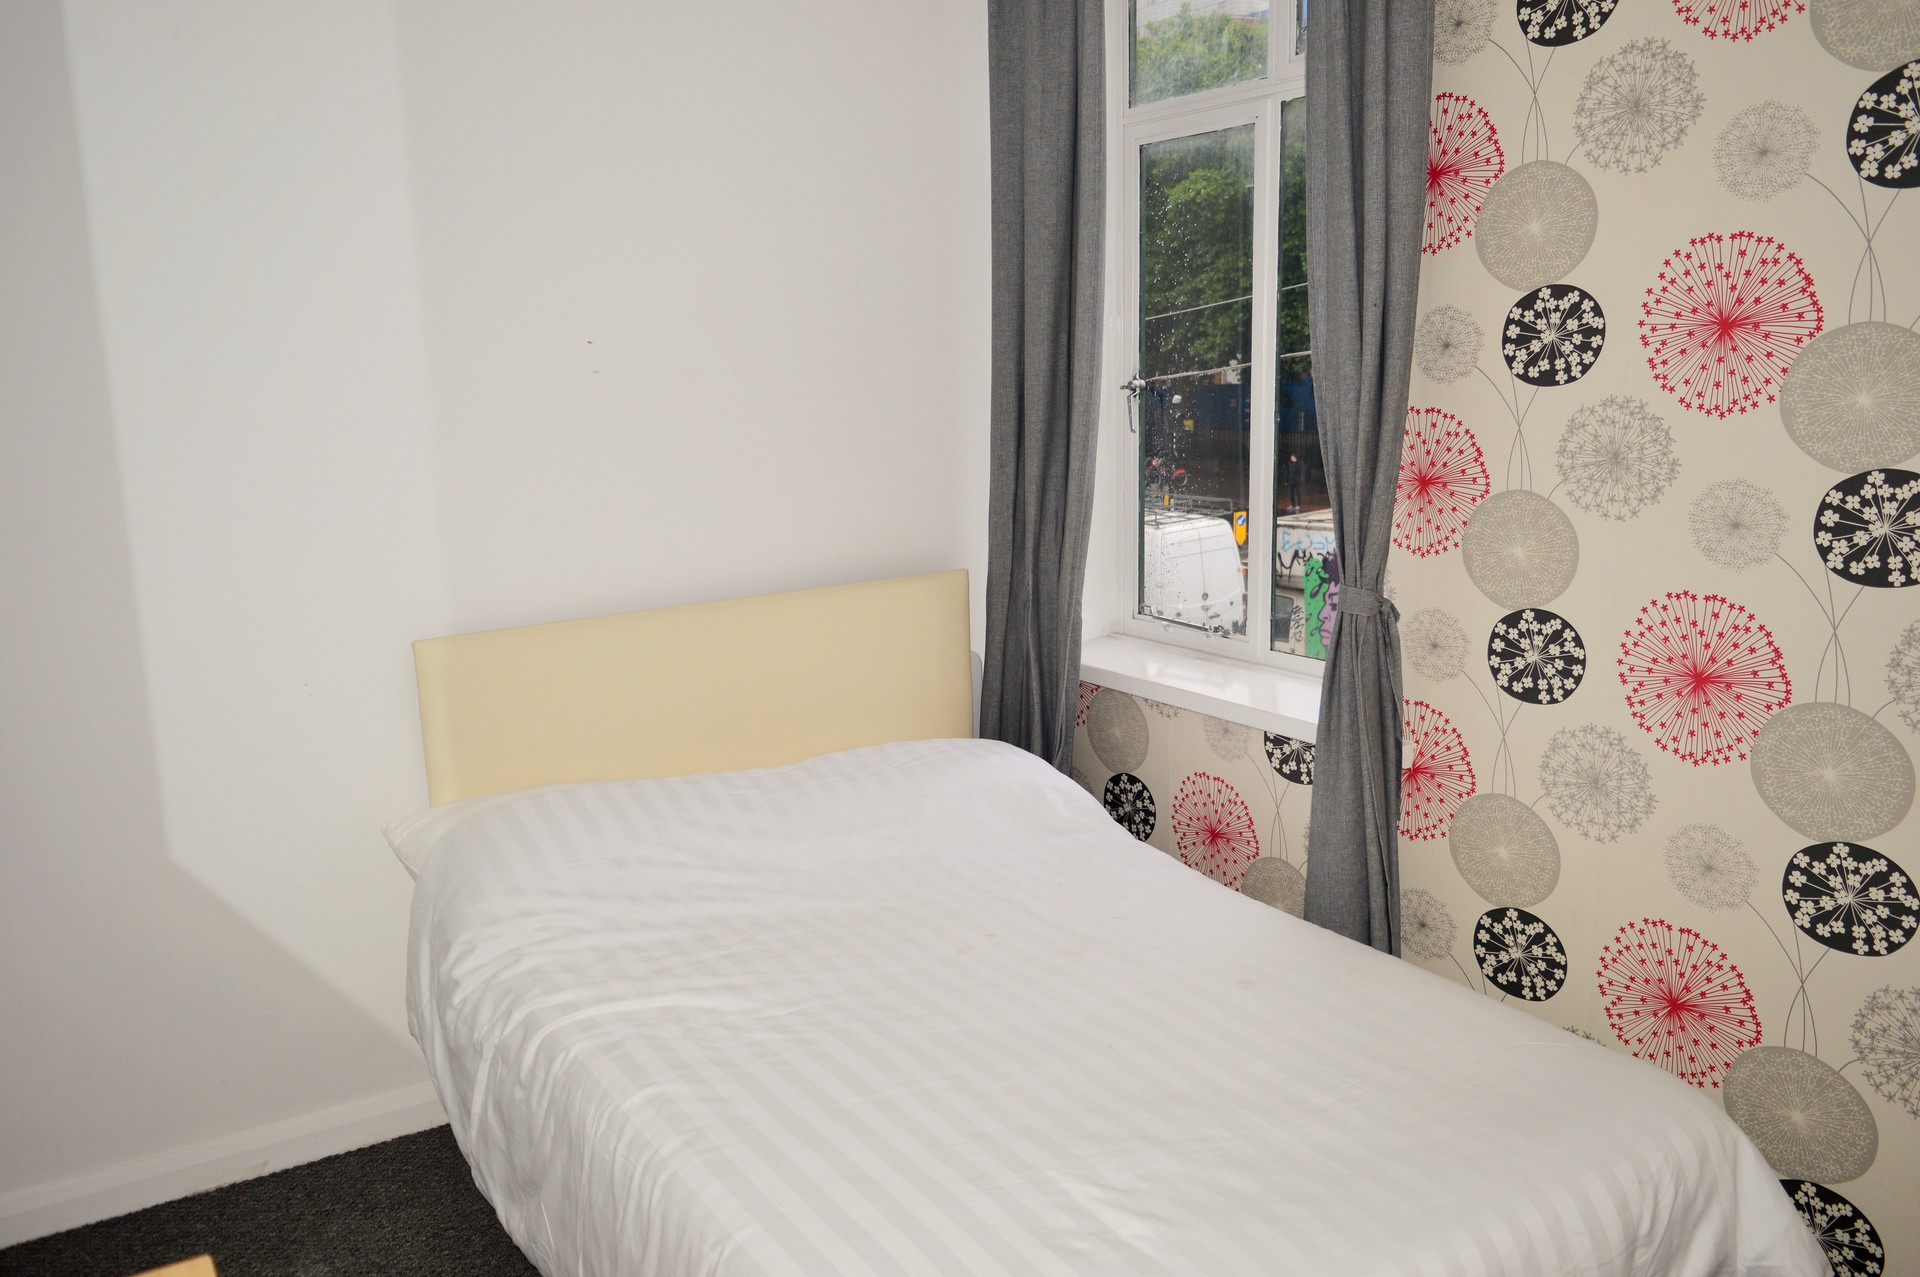 e7827e3e0325 BRIGHT SMALL DOUBLE BEDROOM FOR RENT IN EAST LONDON E1 | Room for ...